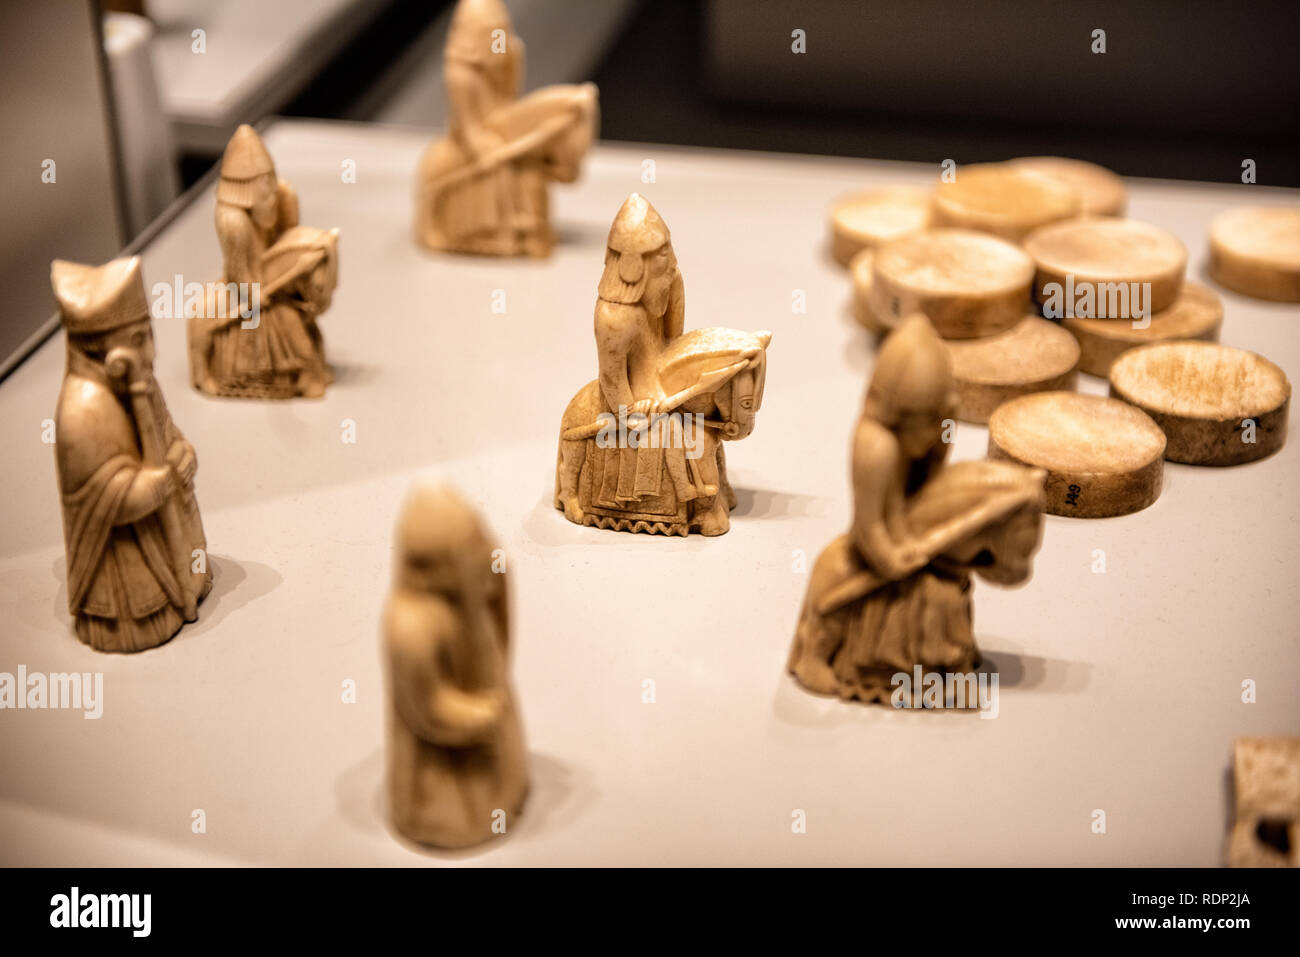 The Lewis Chessmen (or Uig Chessmen) is a collection of elaborately carved walrus ivory chessmen and gaming counters dating to the 12th century. They  - Stock Image